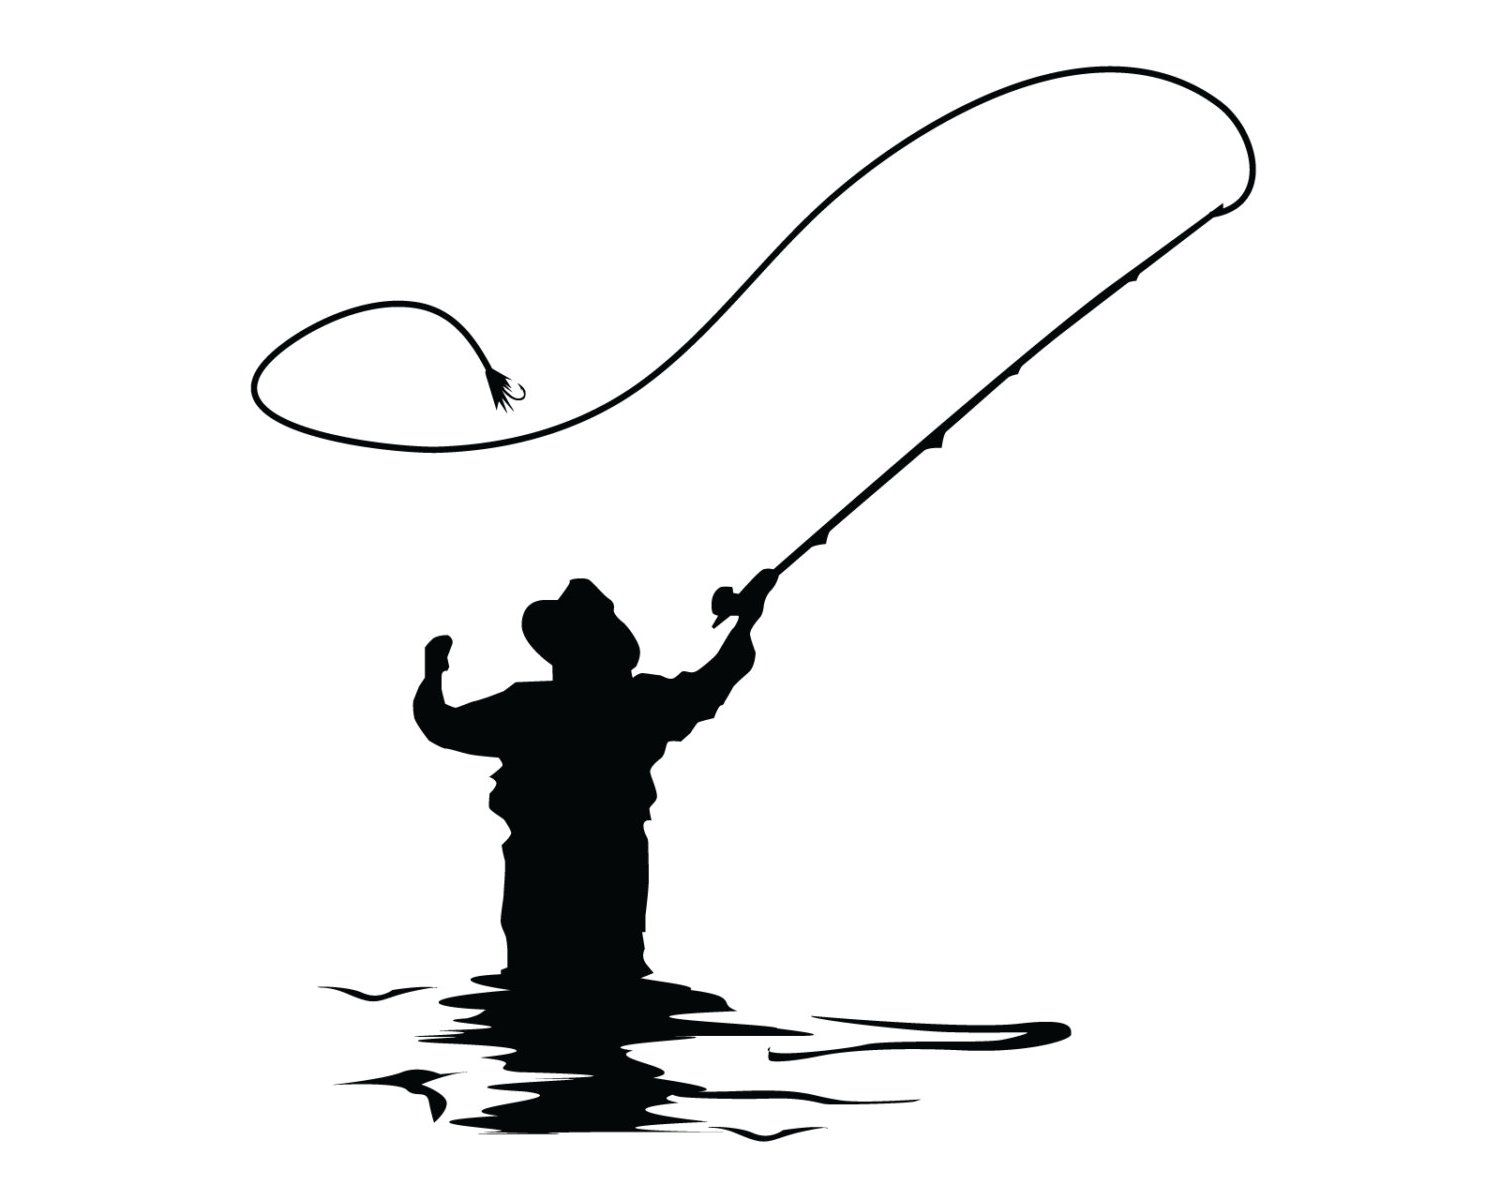 Fishing Rod Clipart Fly Fishing Free Png Logo Coloring Pages Fishing Rod Fish Silhouette Silhouette Images Silhouette Vector